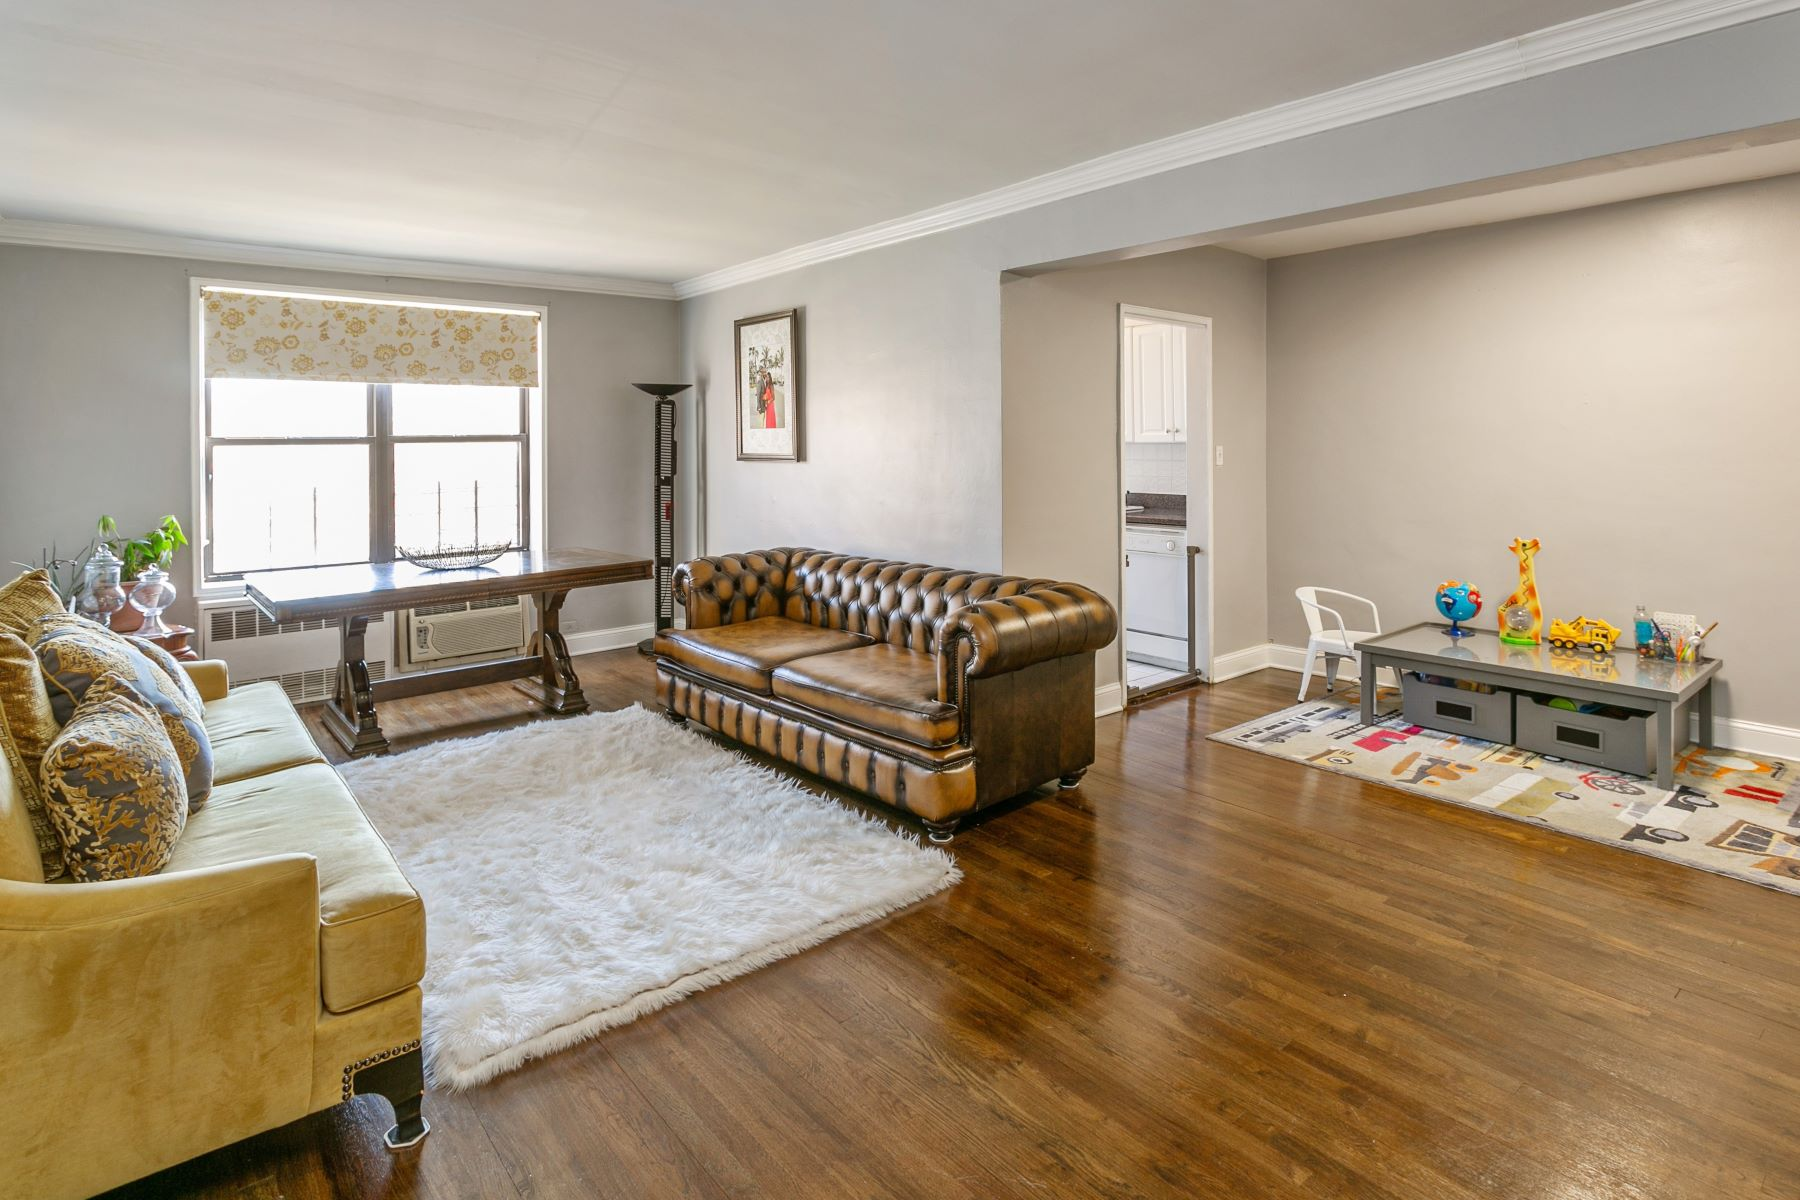 Co-op Properties for Sale at Queens Village 80-35 Springfield Blvd , 4P Queens Village, New York 11427 United States